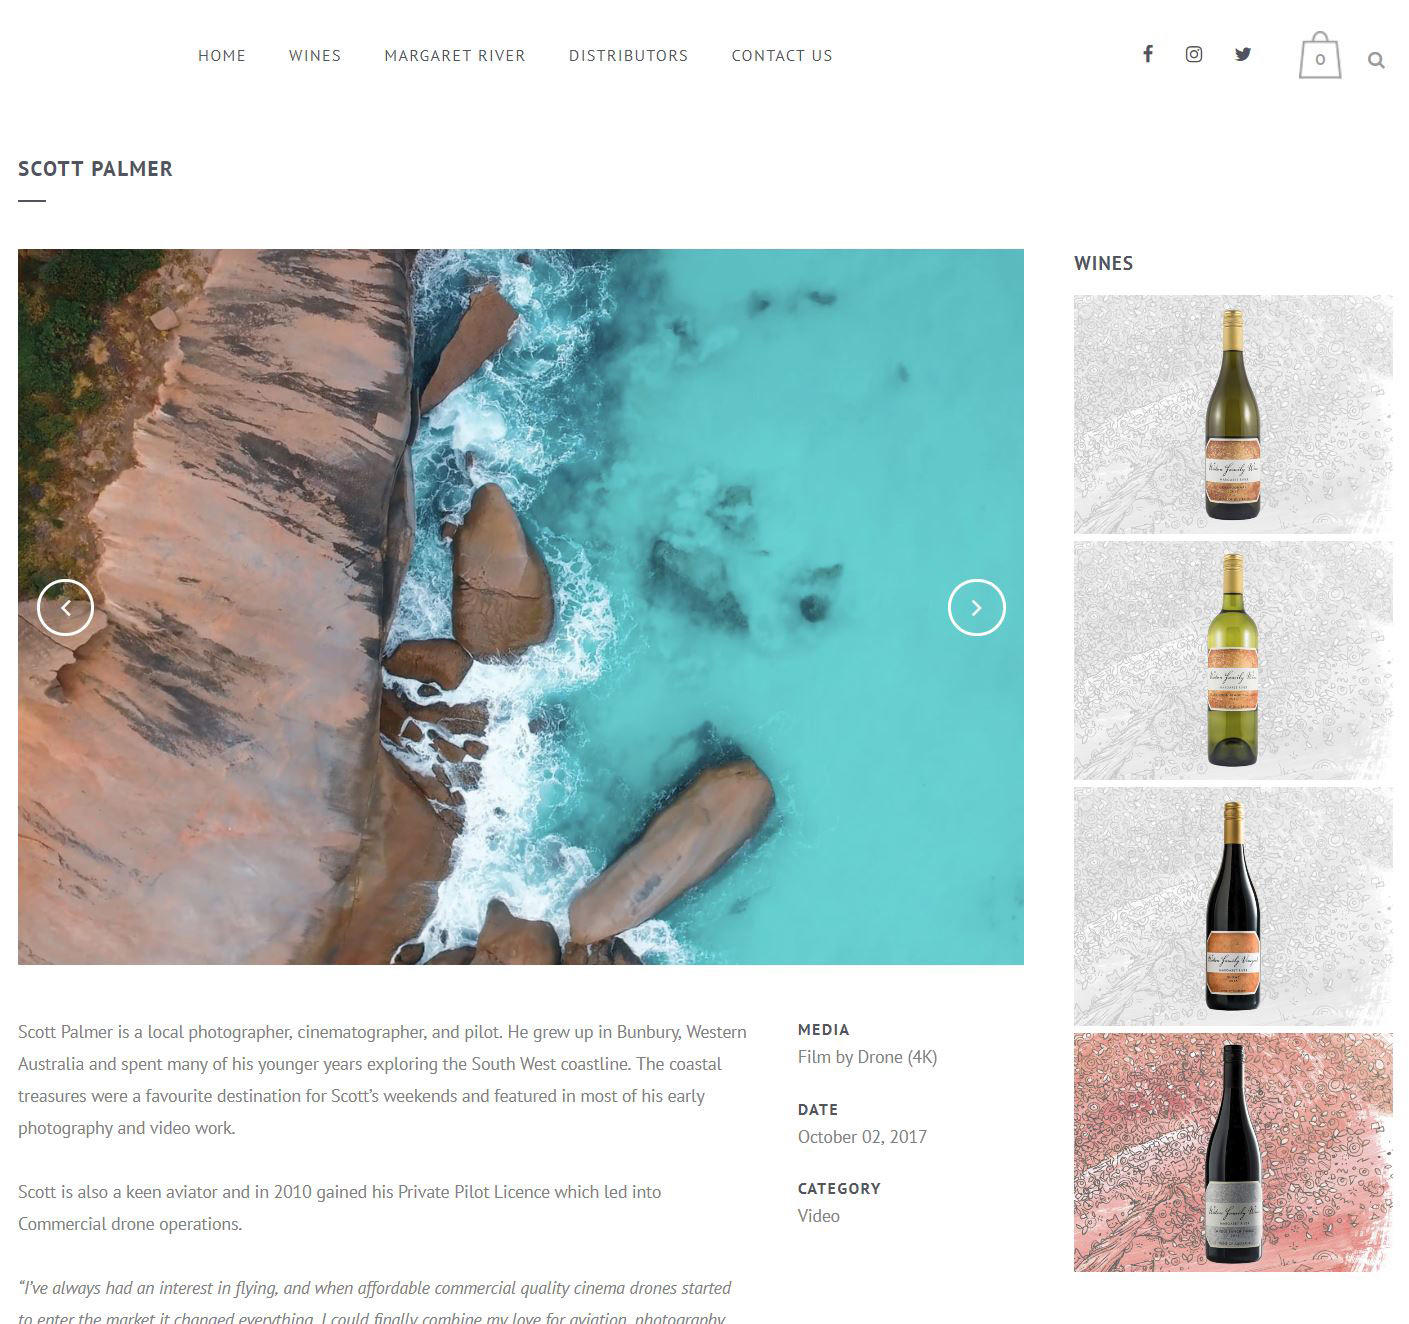 http://cdn.droneimage.com.au/wp-content/uploads/2019/07/watson-family-wines-features-drone-image-western-australia-drone-photography-tv-cinematograhy-commercial-WA-Perth.jpg?x97167